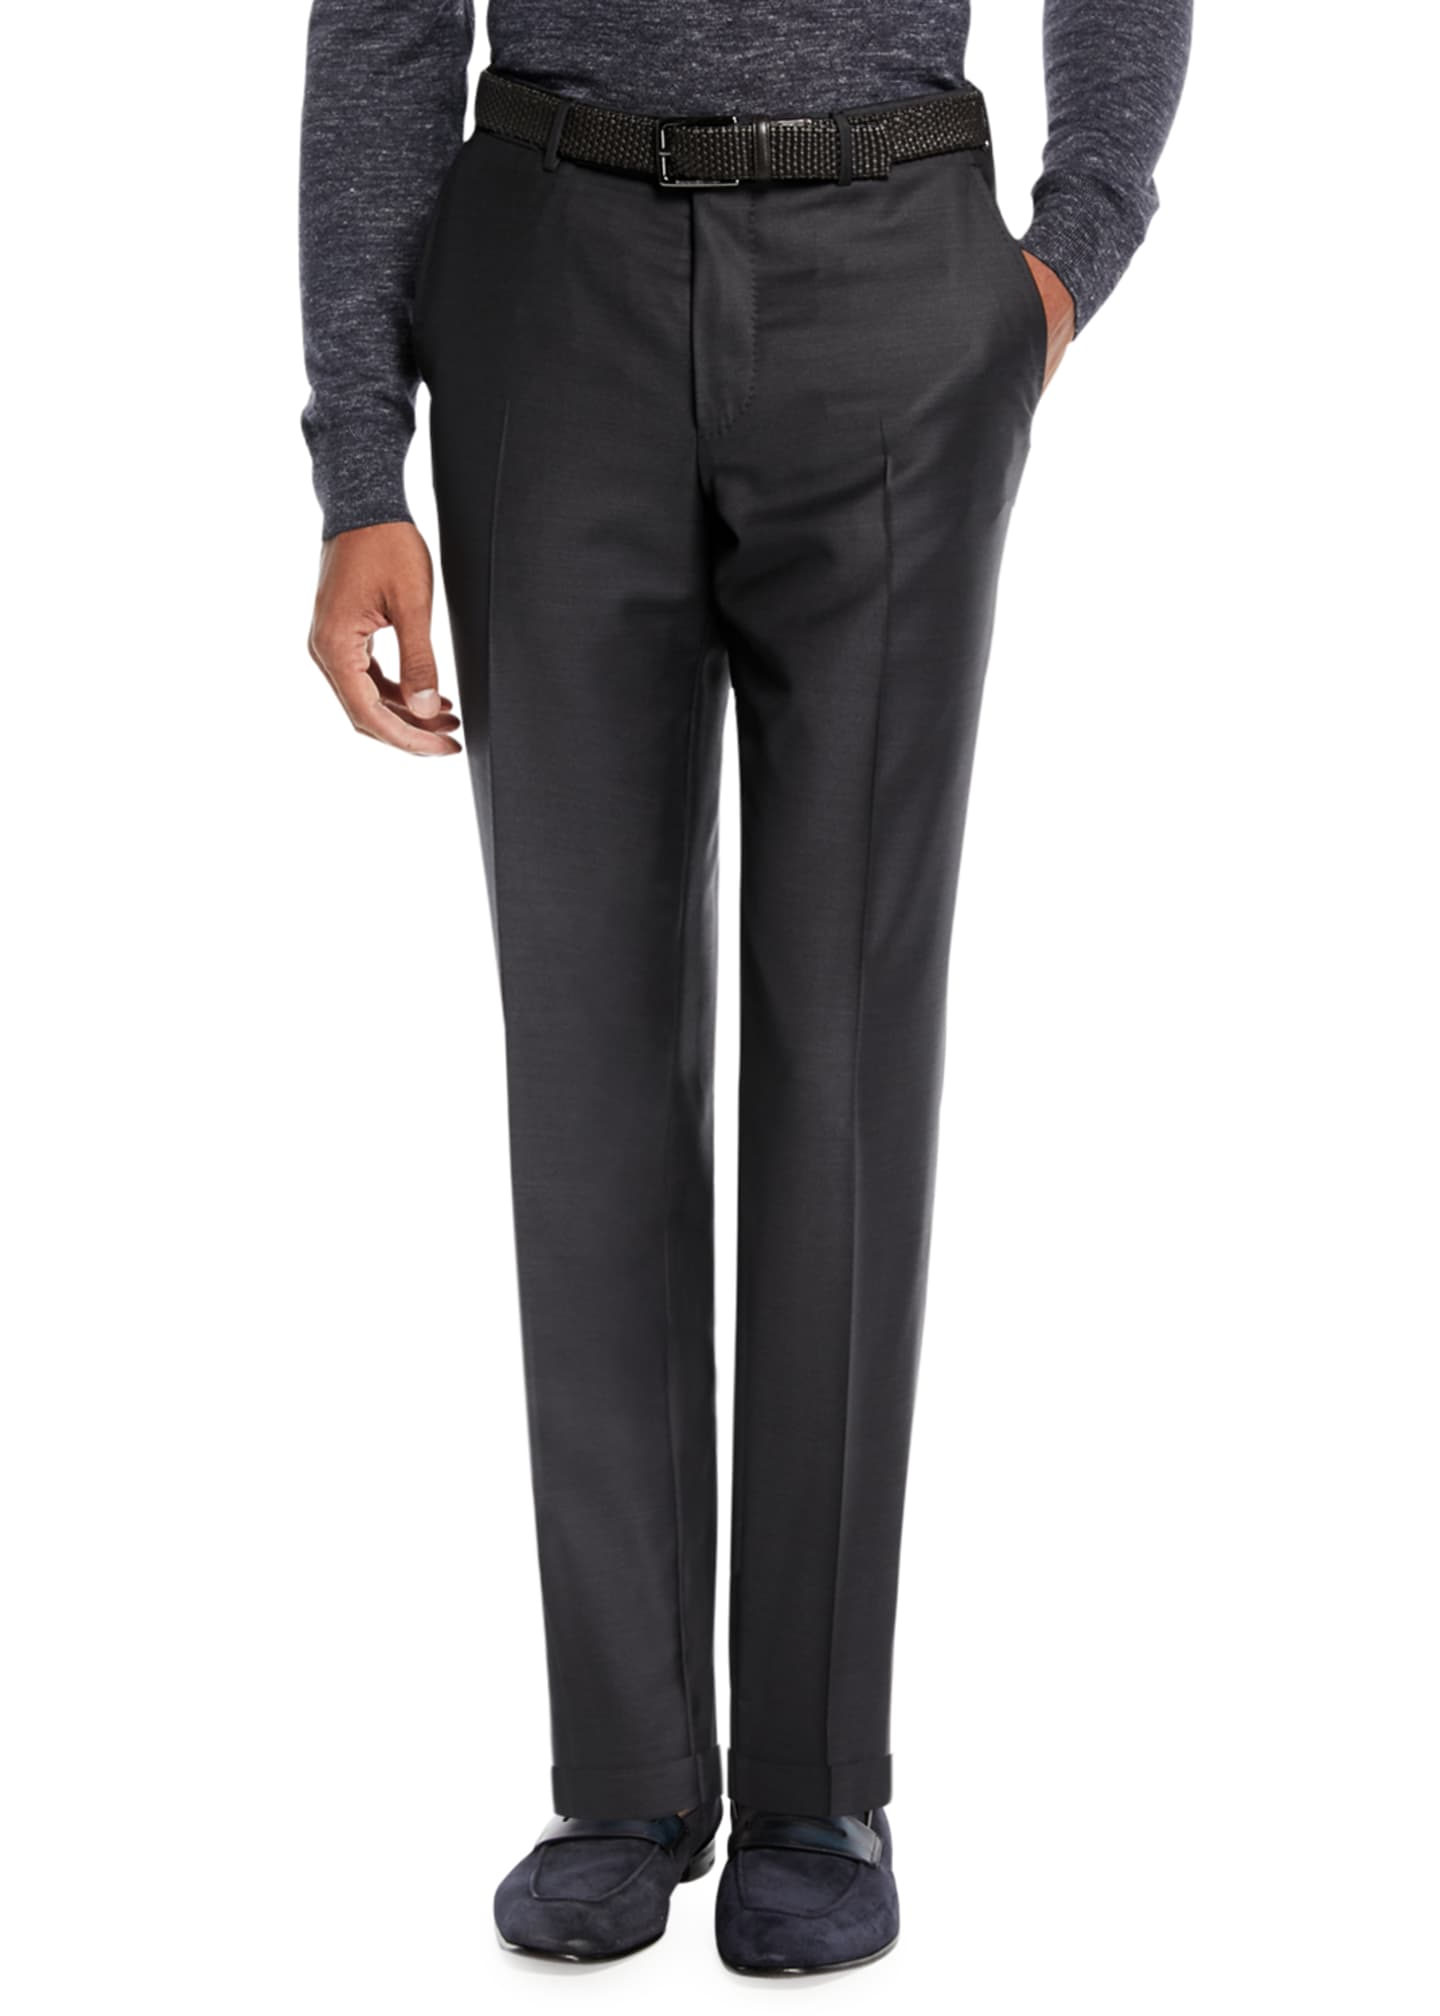 Ermenegildo Zegna Men's Trofeo® Wool Trousers